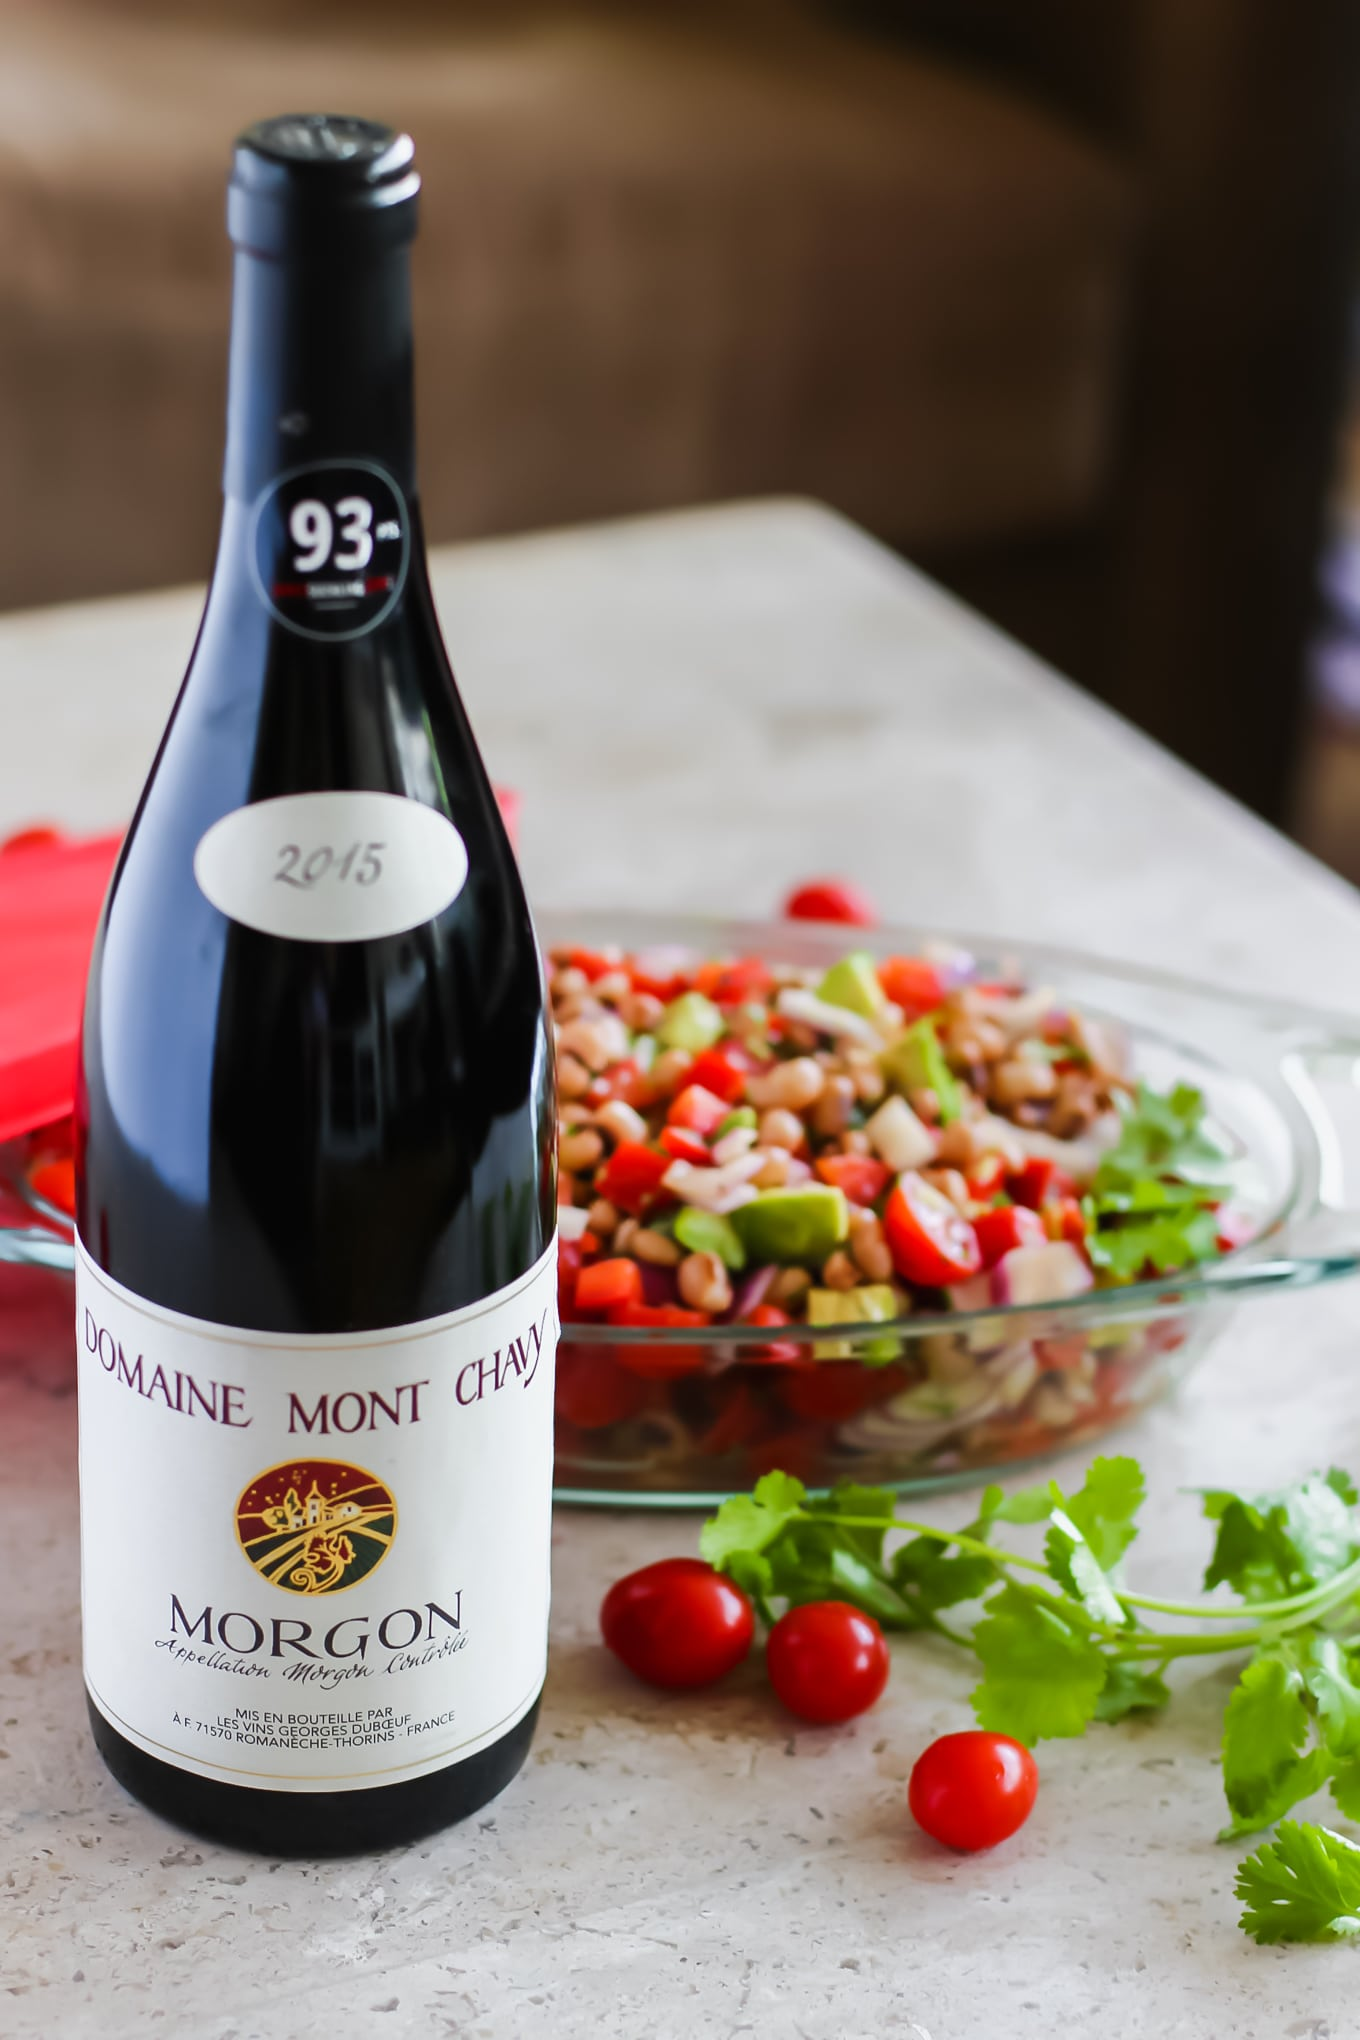 Morgon by Domaine Mont Chavy - Lake Shore Lady